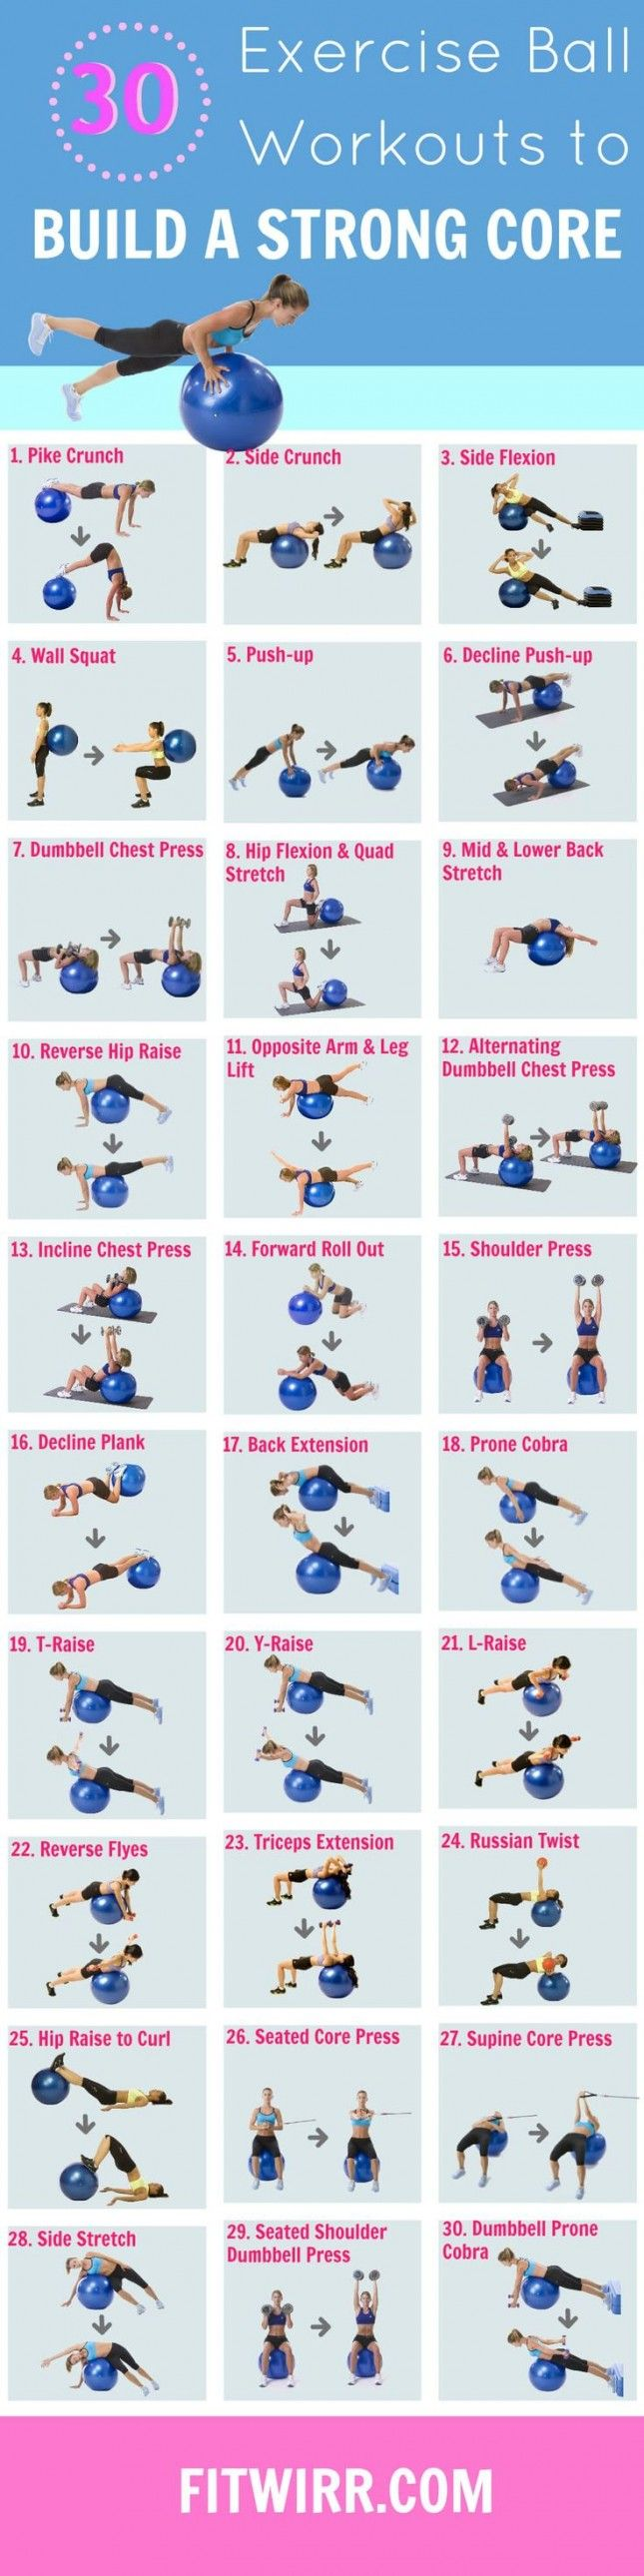 10 Free Printable Workouts to Get Fit Anywhere via Brit + Co.